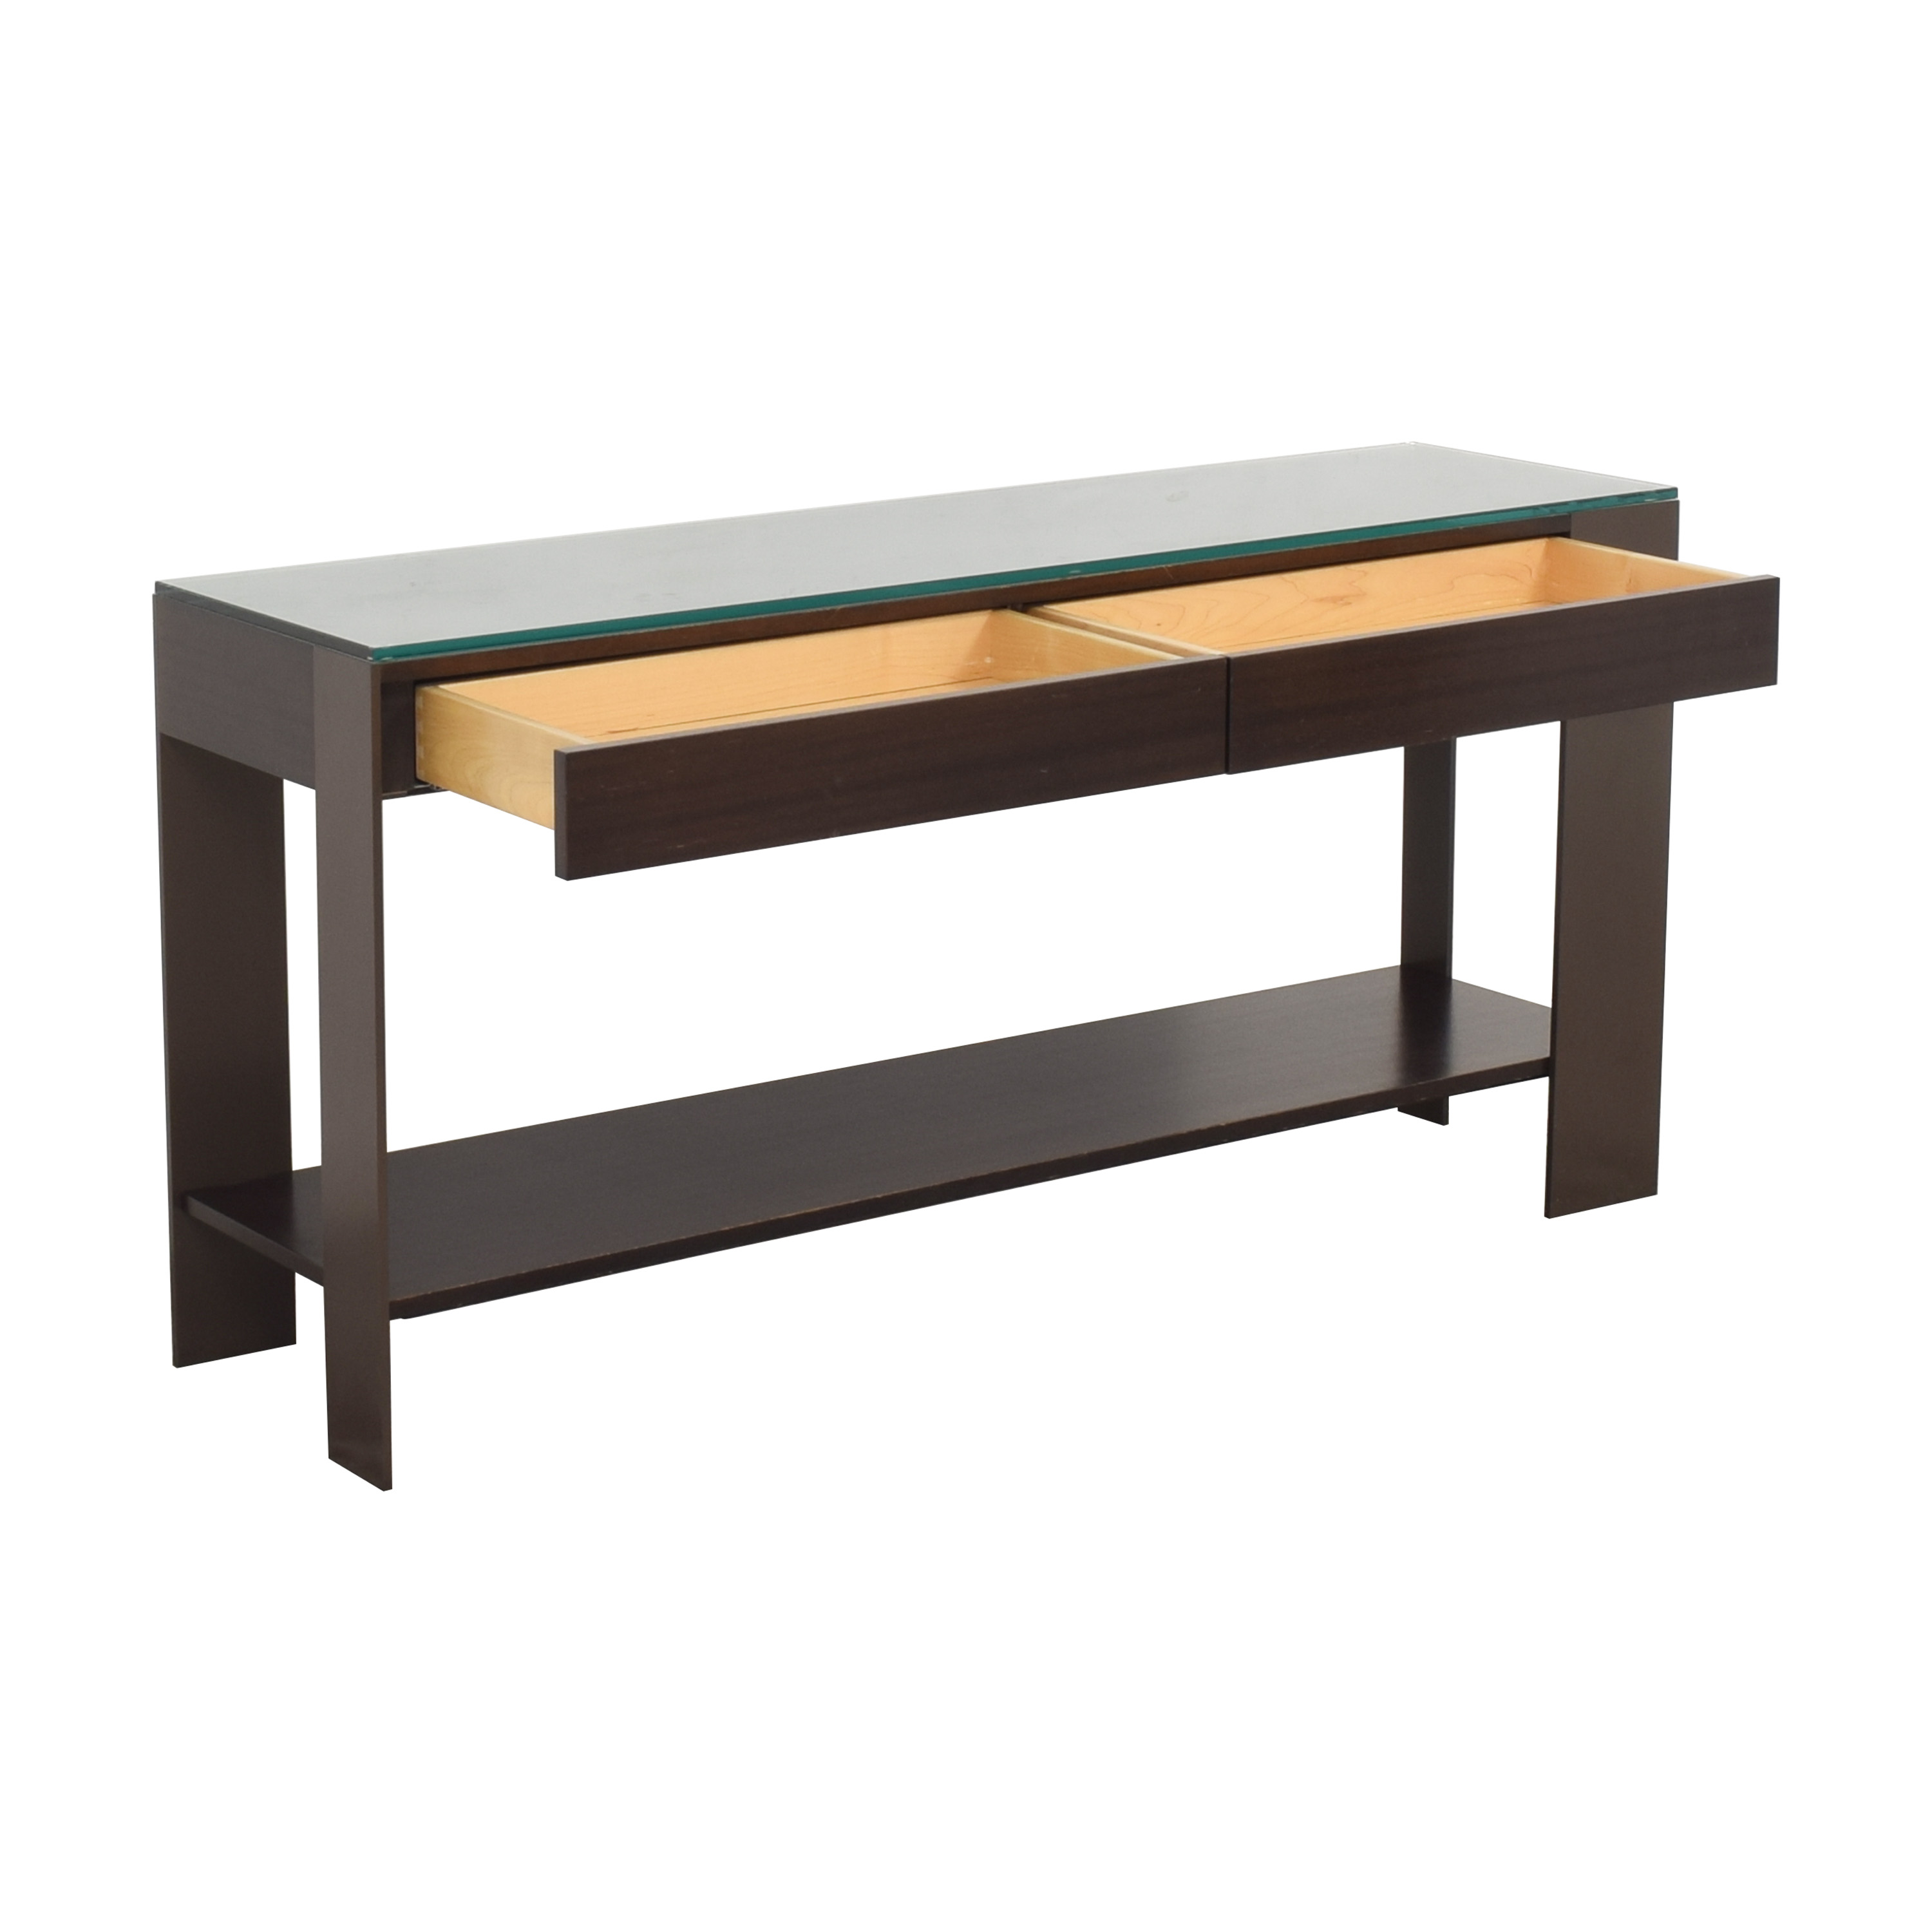 buy Antoine Proulx Console with Shelf Antoine Proulx Accent Tables